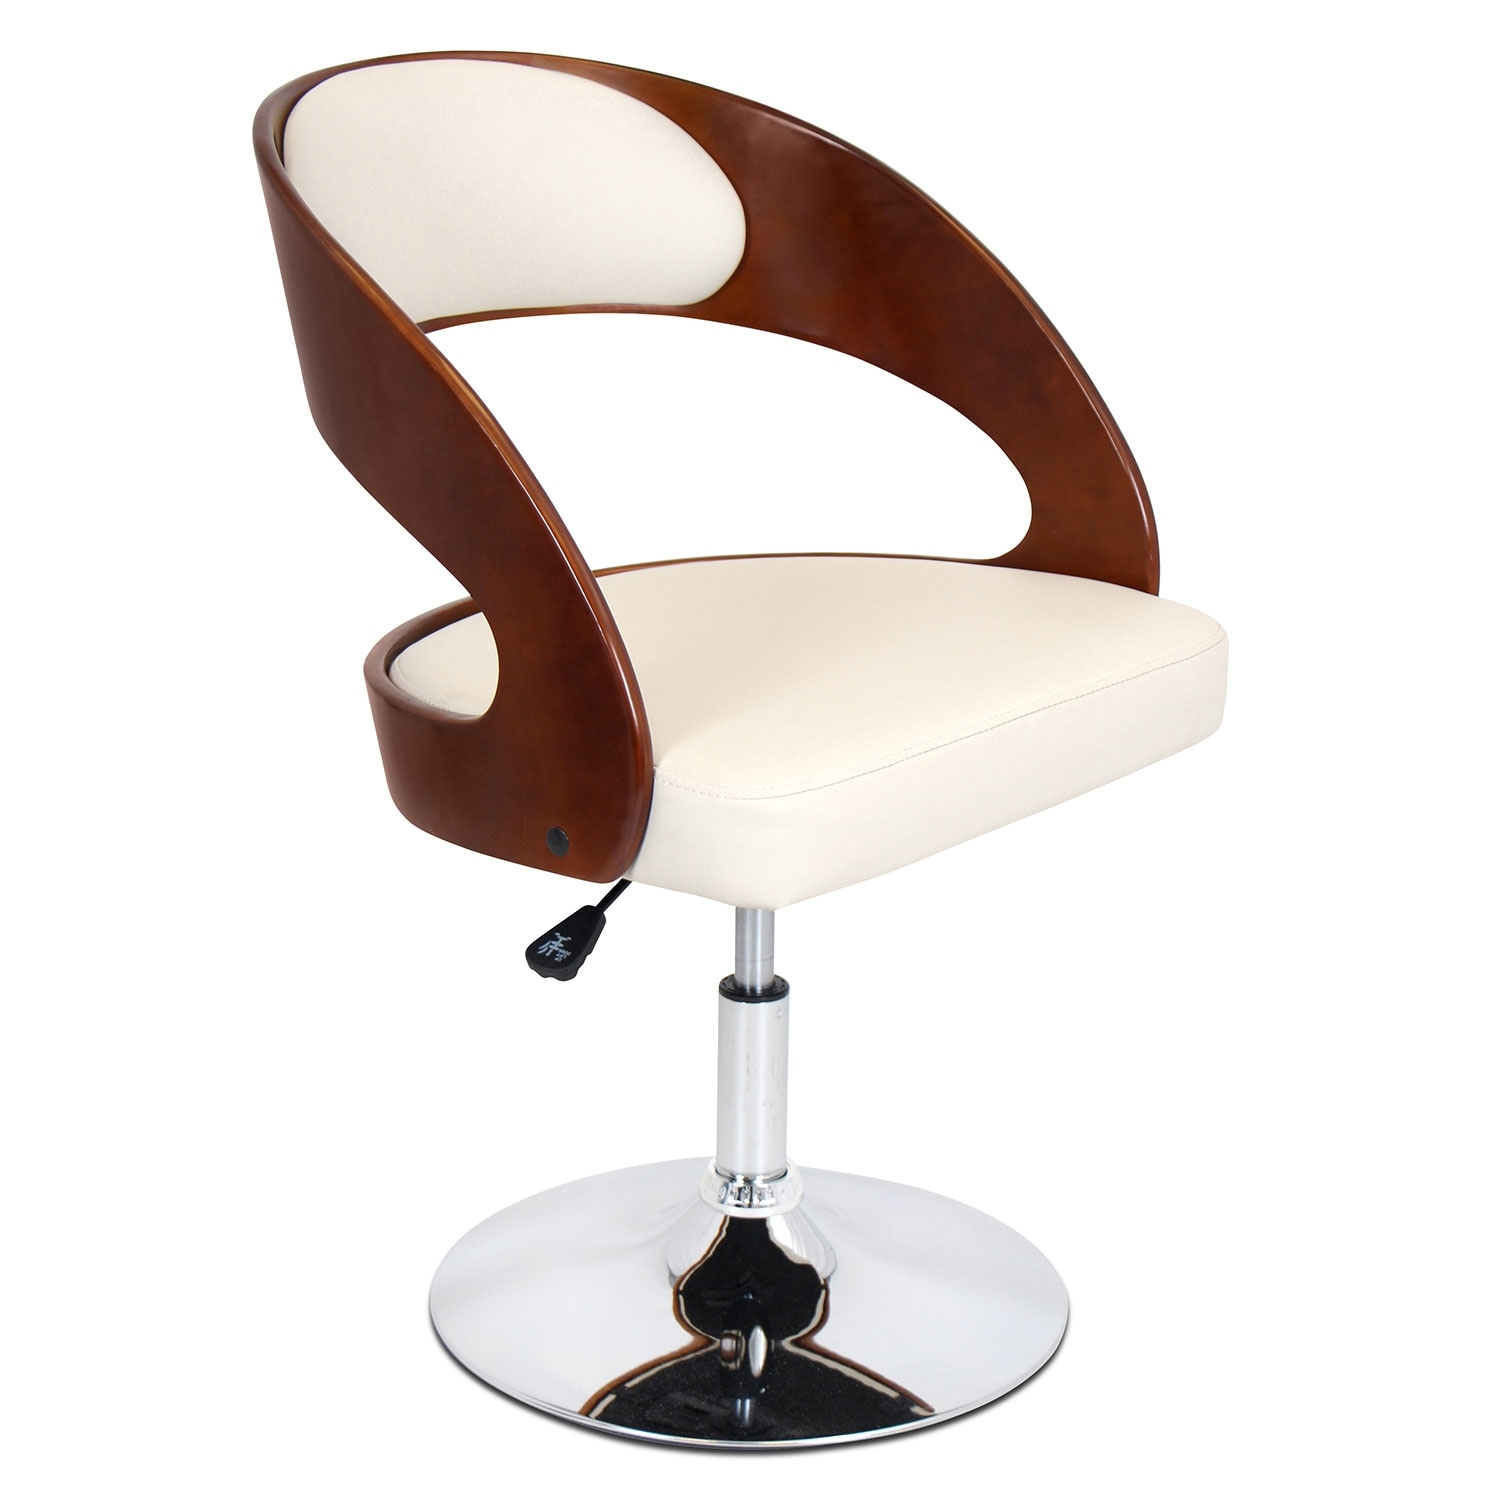 Oxford Accent Chair - White